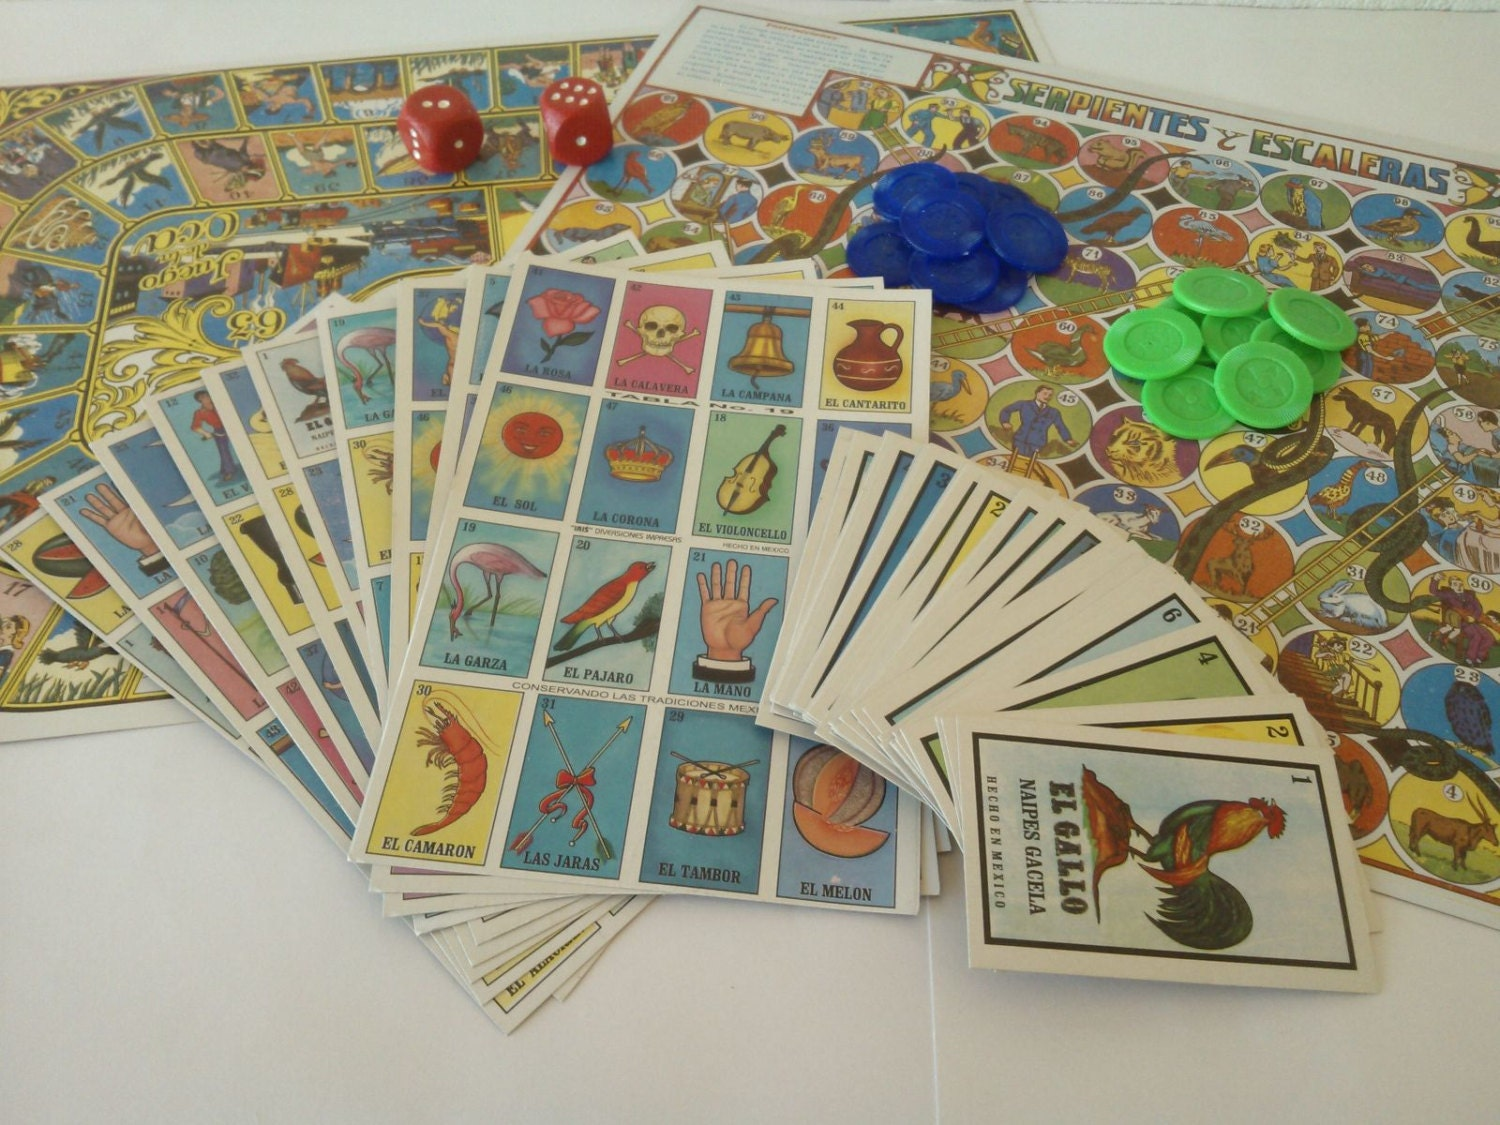 Black gloves lyrics goose - Lot Of 3 Mexican Party Games Loteria Bingo Game 10 Players Lyric Song Included Snakes And Ladders Oca Game Game Of The Goose